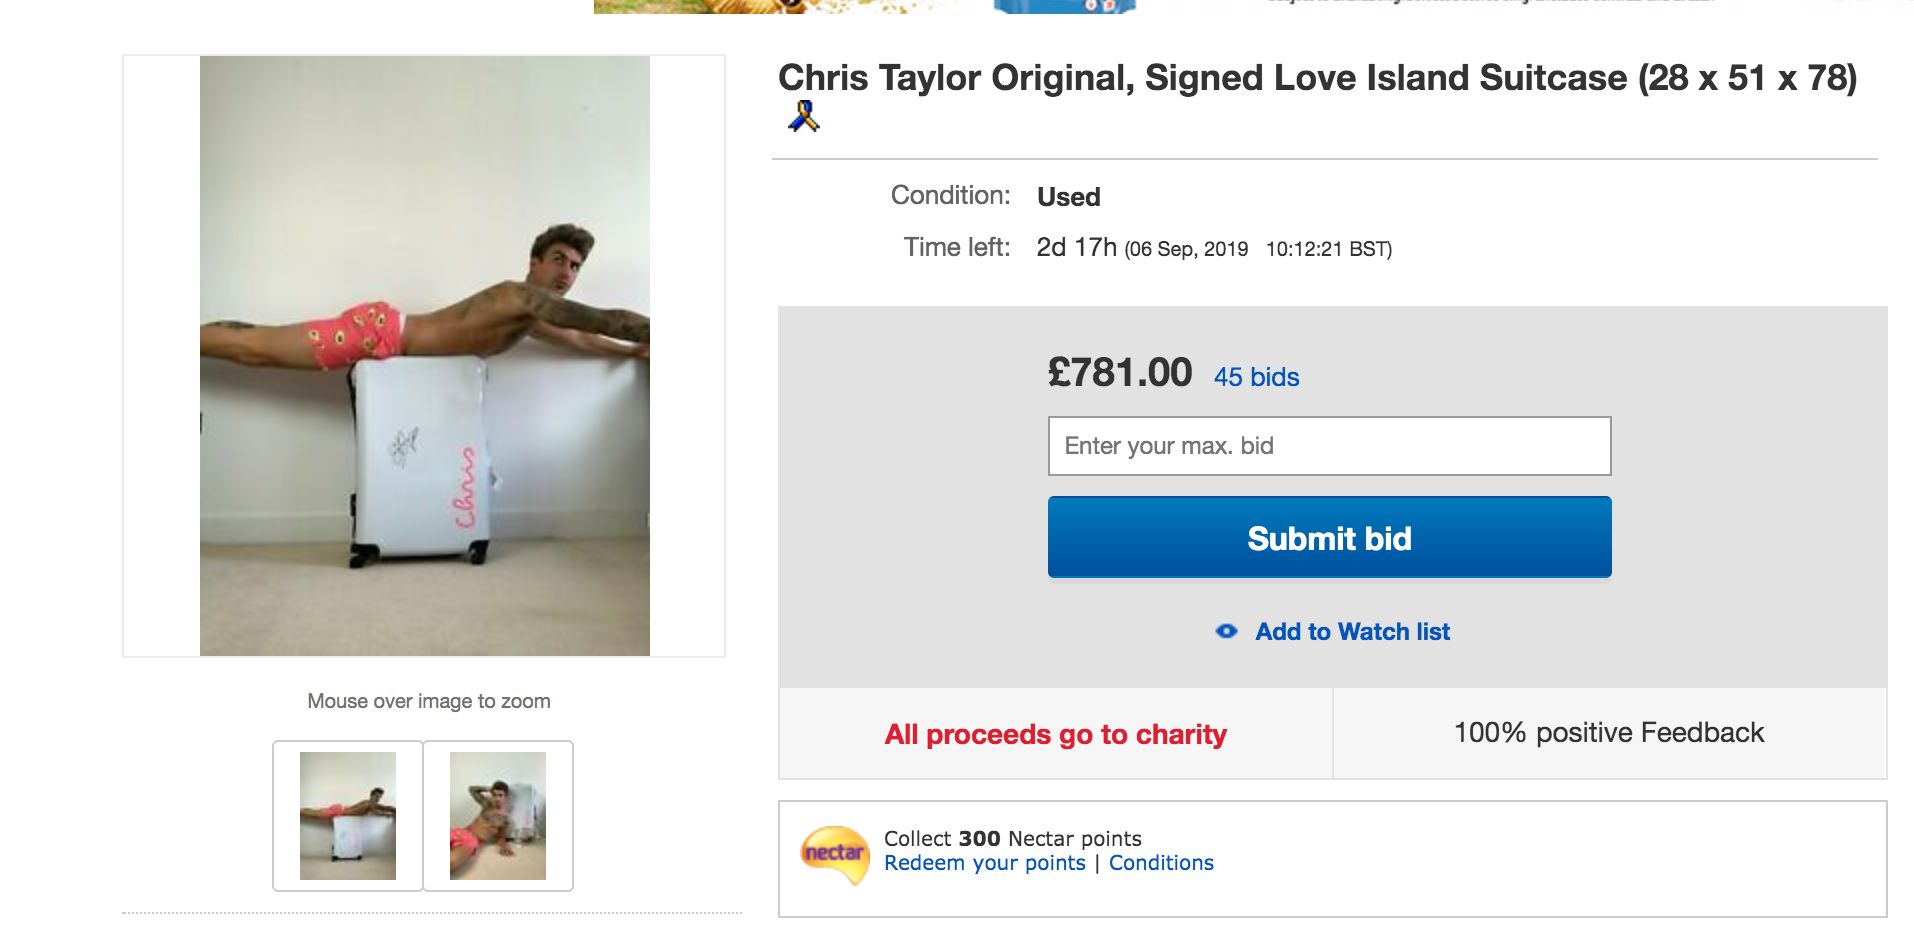 Image may contain: Love Island, Chris Taylor, merchandise, auction, eBay, merch, selling, charity, dogs trust, suitcase, Webpage, Flyer, Brochure, Paper, Advertisement, Poster, Text, File, Person, Human